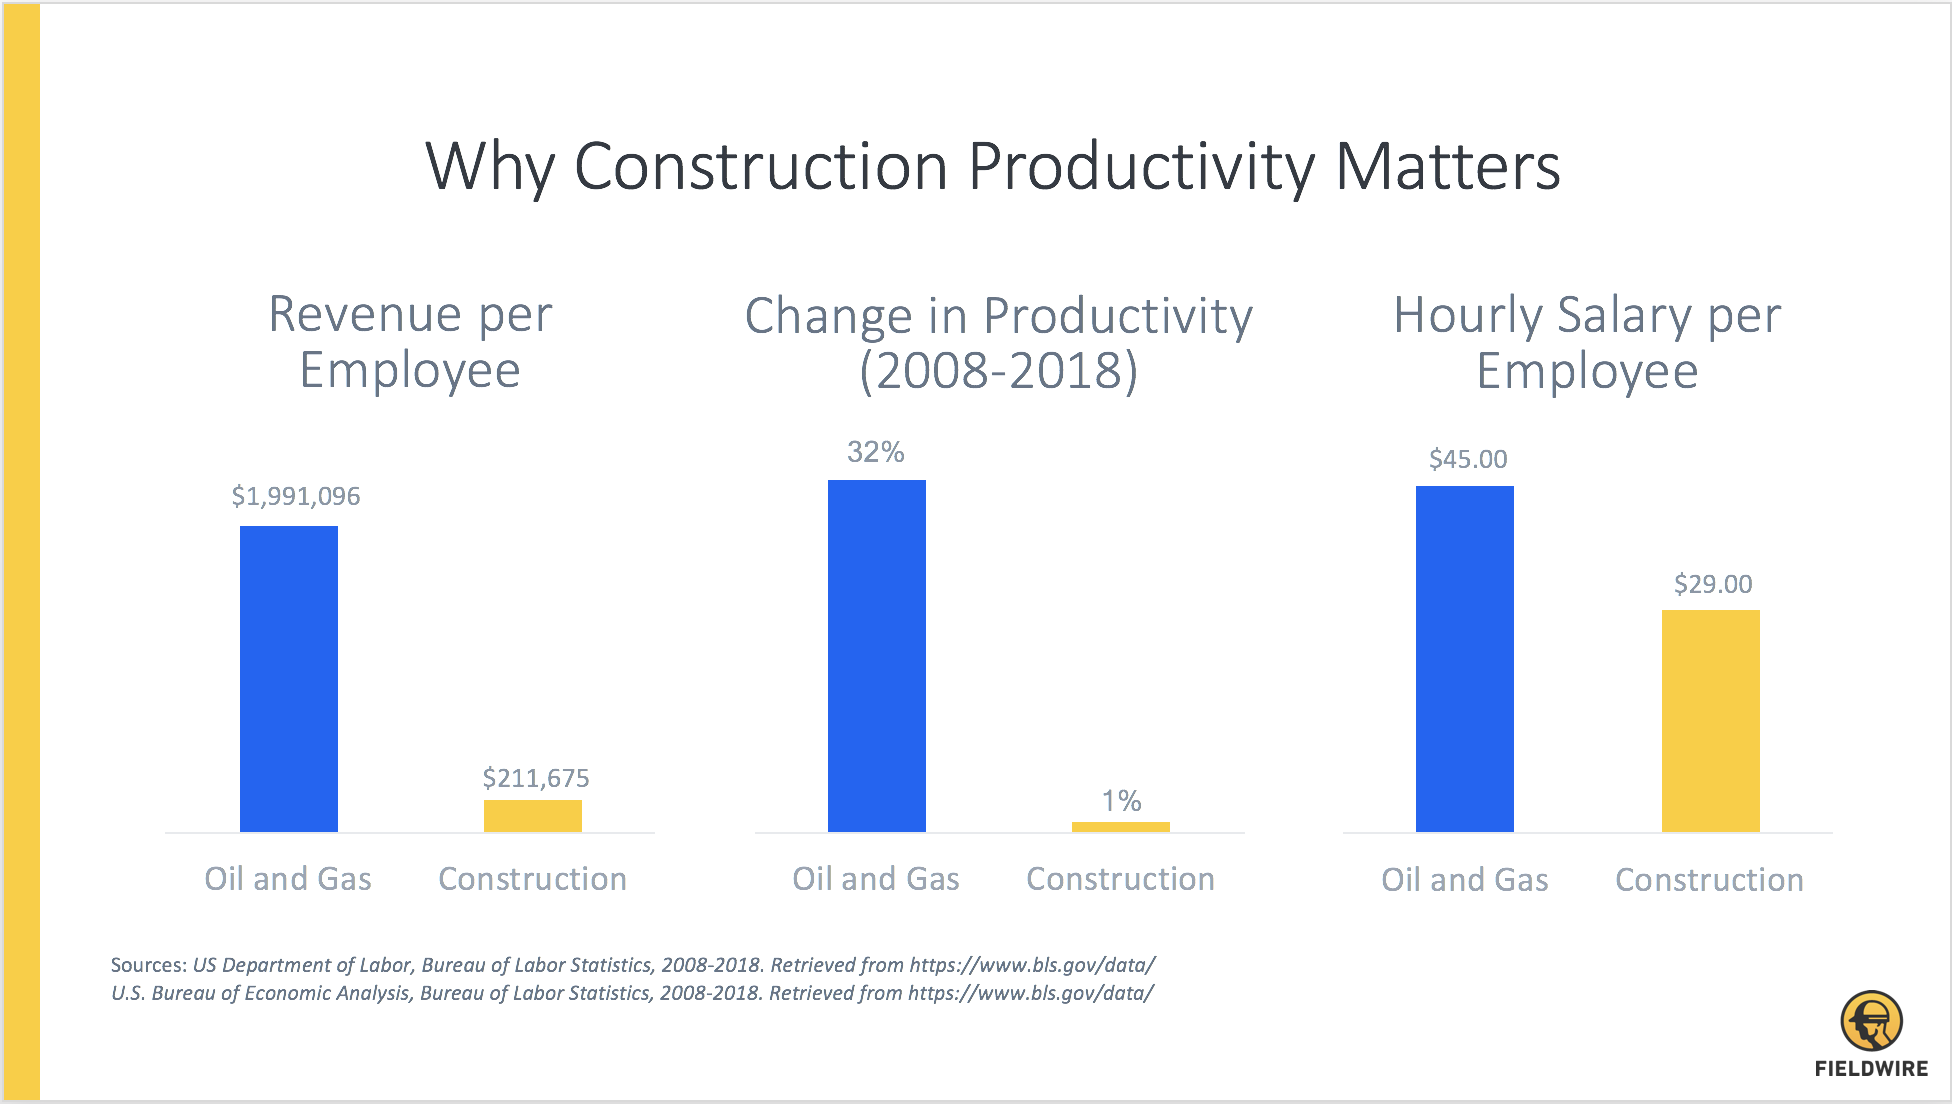 ENR 2018 - Construction Productivity - Why It Matters